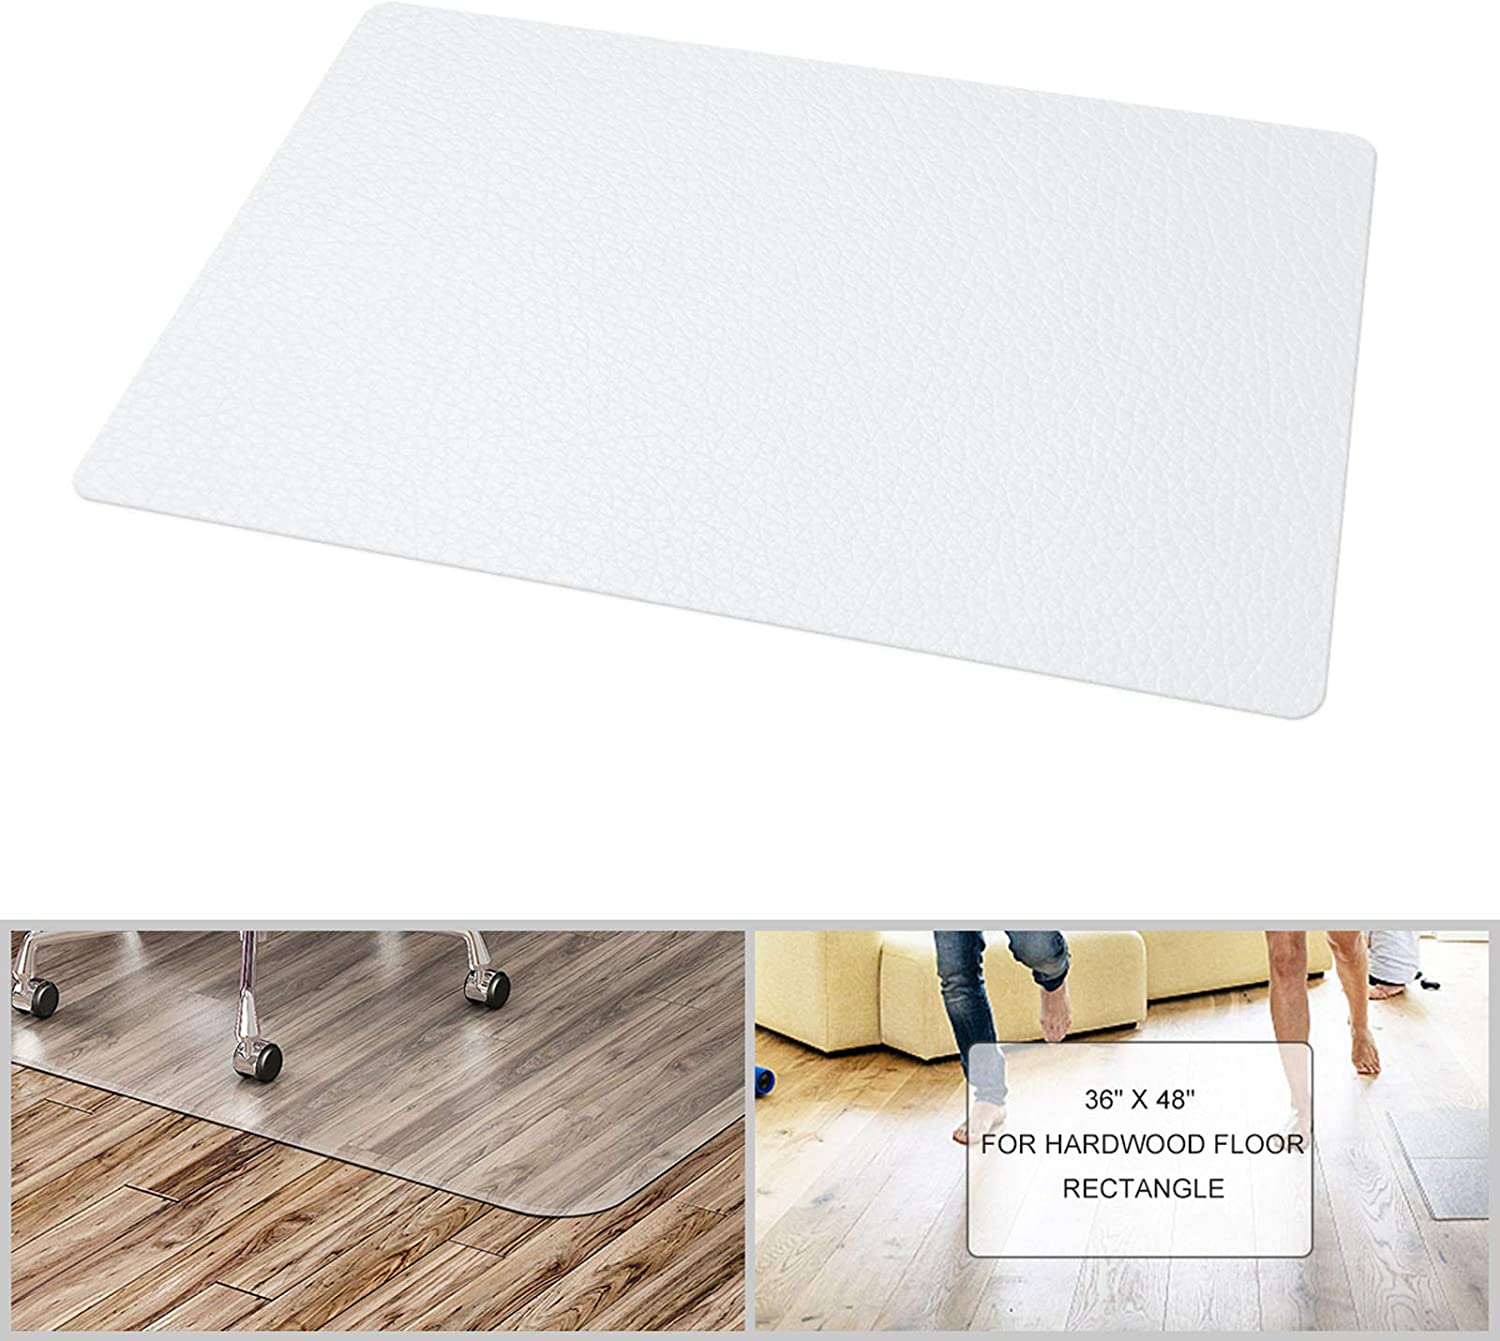 "FRUITEAM Rectangle Office Chair Mat - 36"" x 48"" for Hard Floors, Transparent Hard Floor Protector with Non-Studded Bottom, BPA and Phthalate Free"